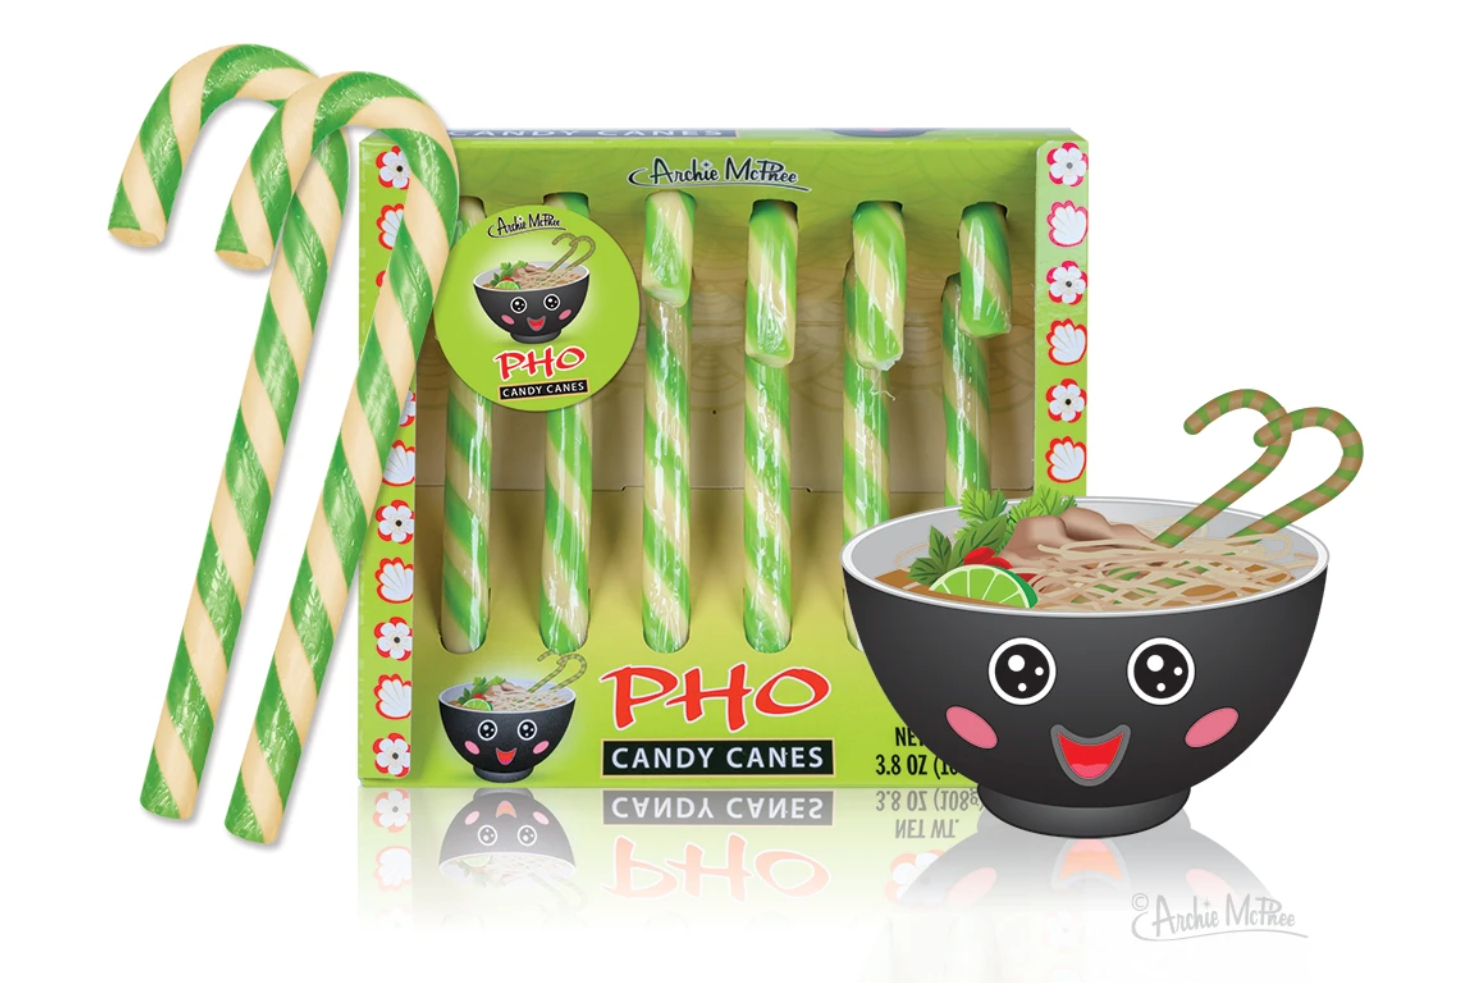 Archie McPhee Pho Candy Canes